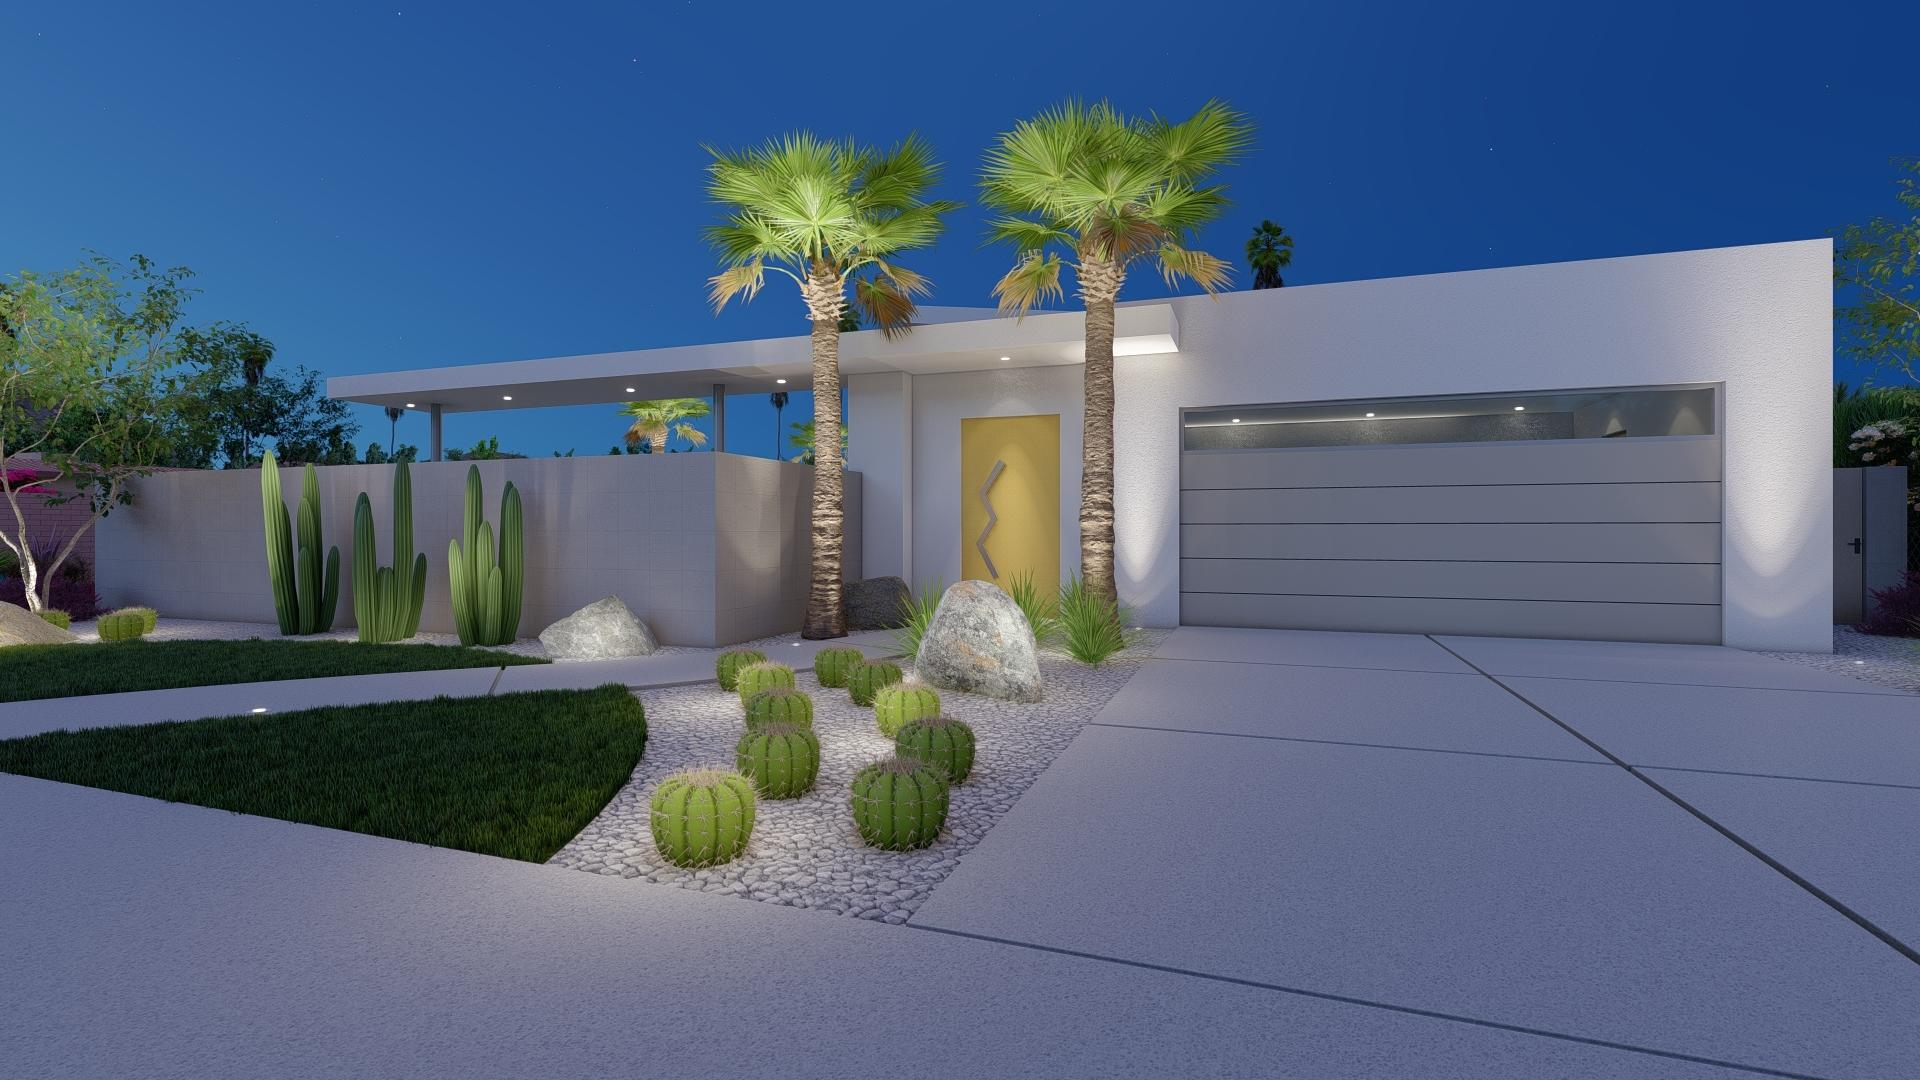 Photo of 2714 Anza Trail, Palm Springs, CA 92264